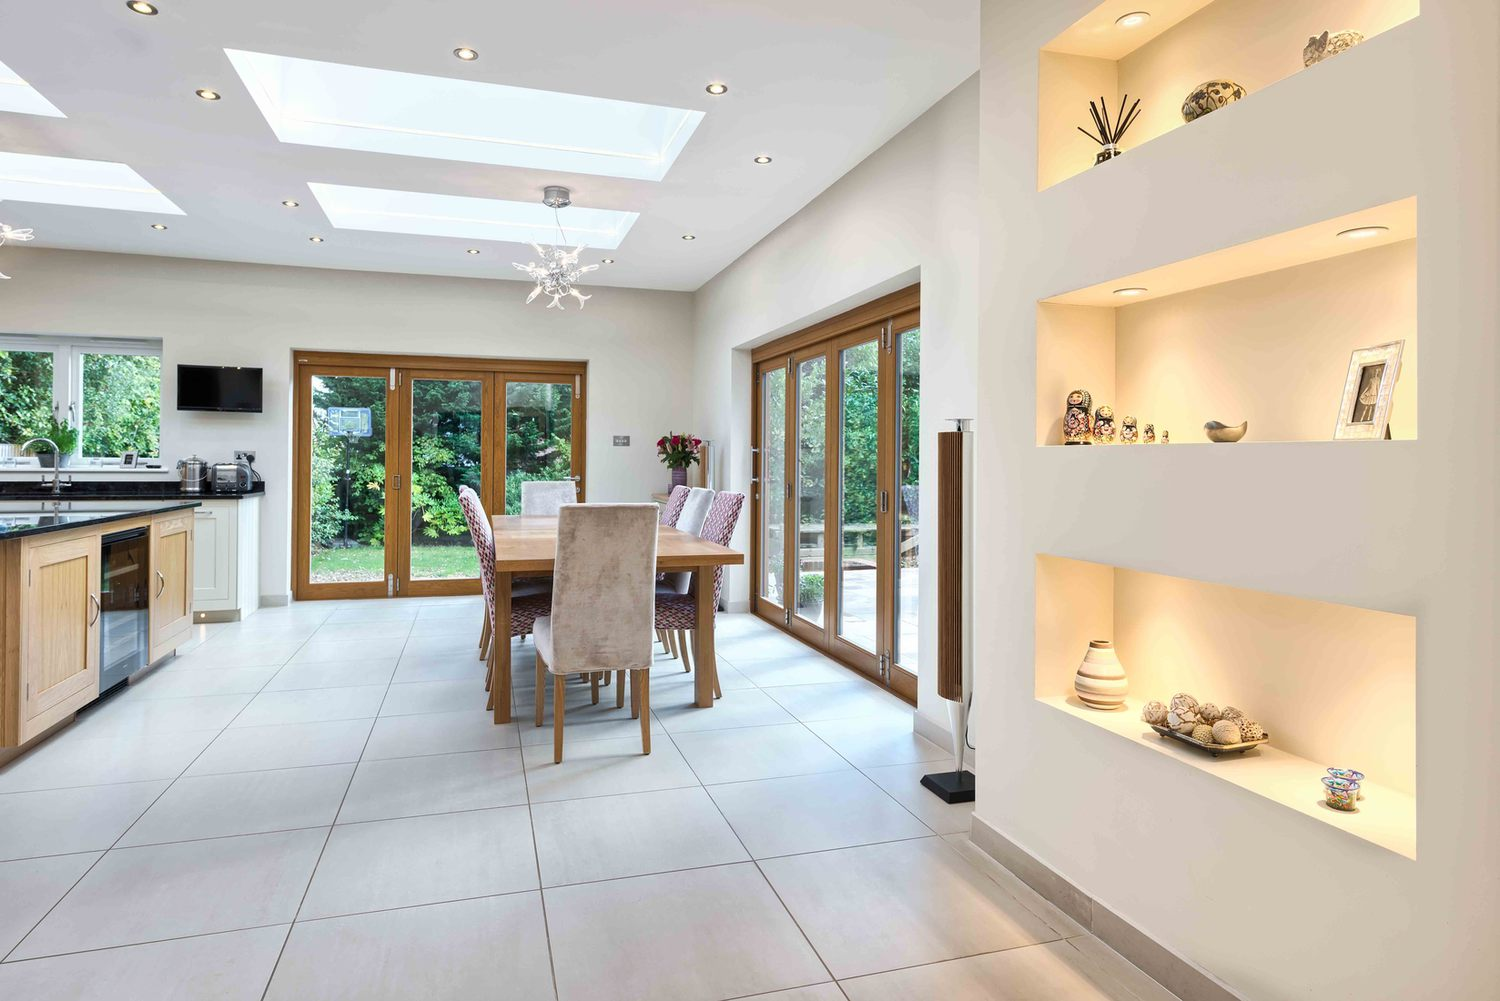 Another dining room view a house extension by Harvey Norman Architects St Albans